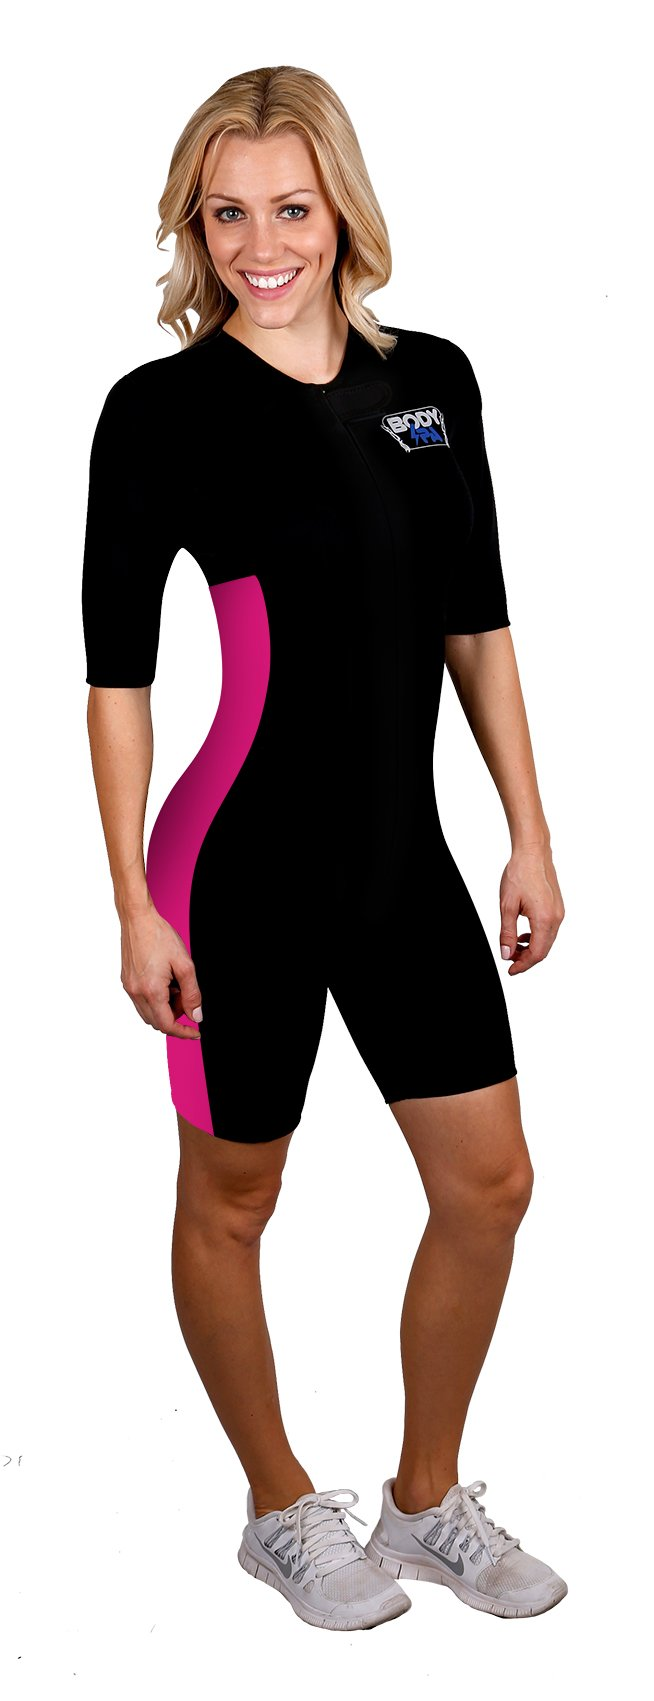 Sauna Suit Neoprene Weight Loss Gym Sport Aerobic Boxing MMA (Pink, Small) 13930